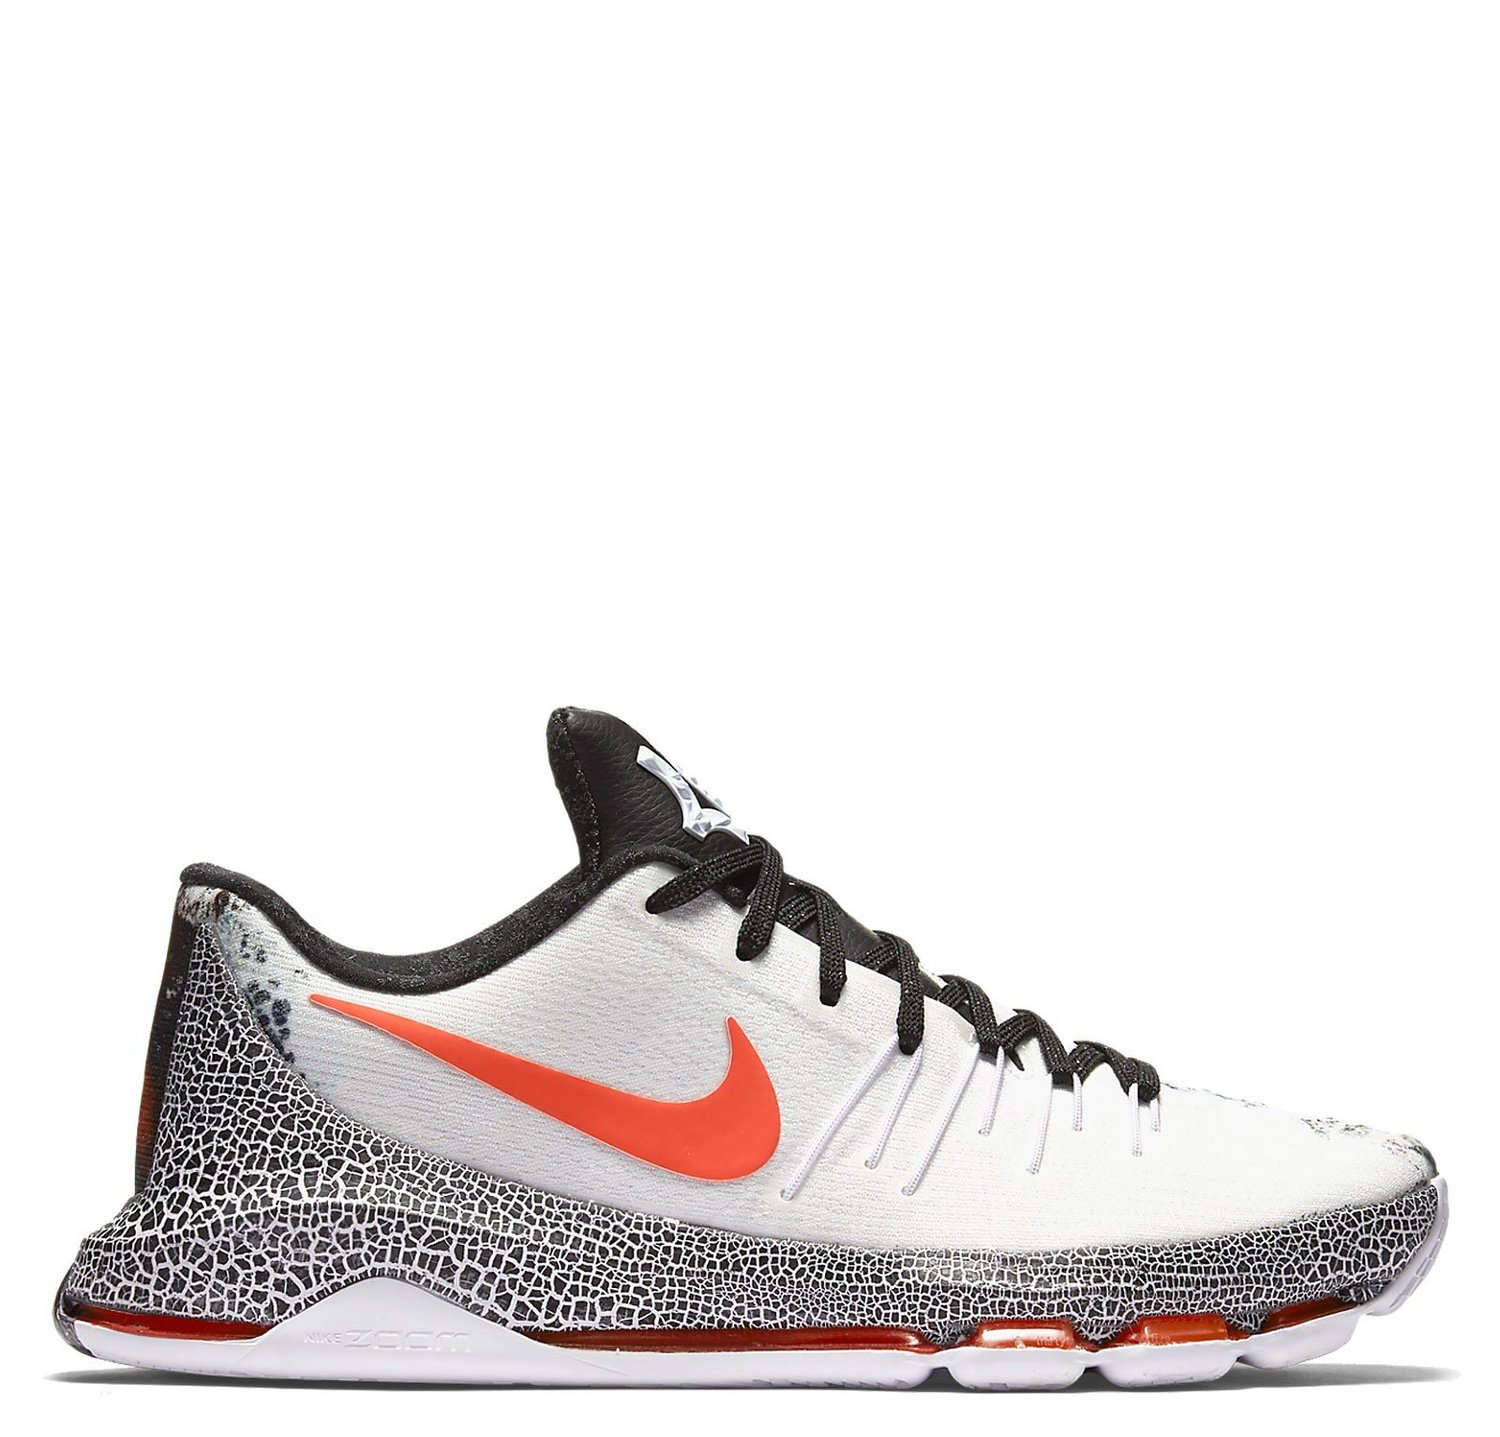 Cheap Kd Gs, find Kd Gs deals on line at Alibaba.com